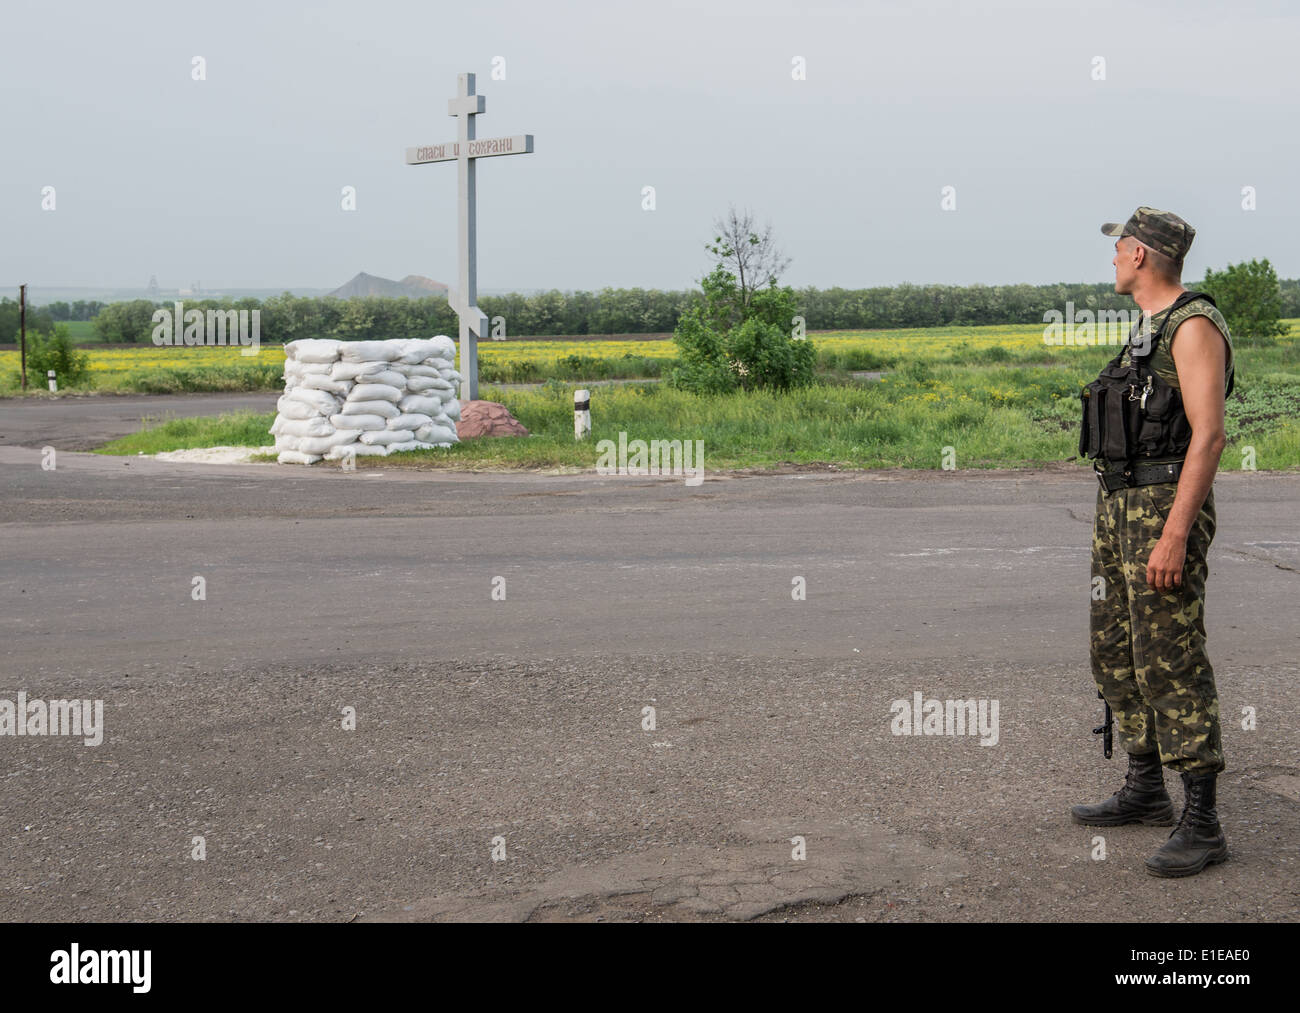 Ukrainian soldier on a check point near Dobropillia in Donetsk Oblast on 19 May during 2014 pro-Russian conflict Stock Photo